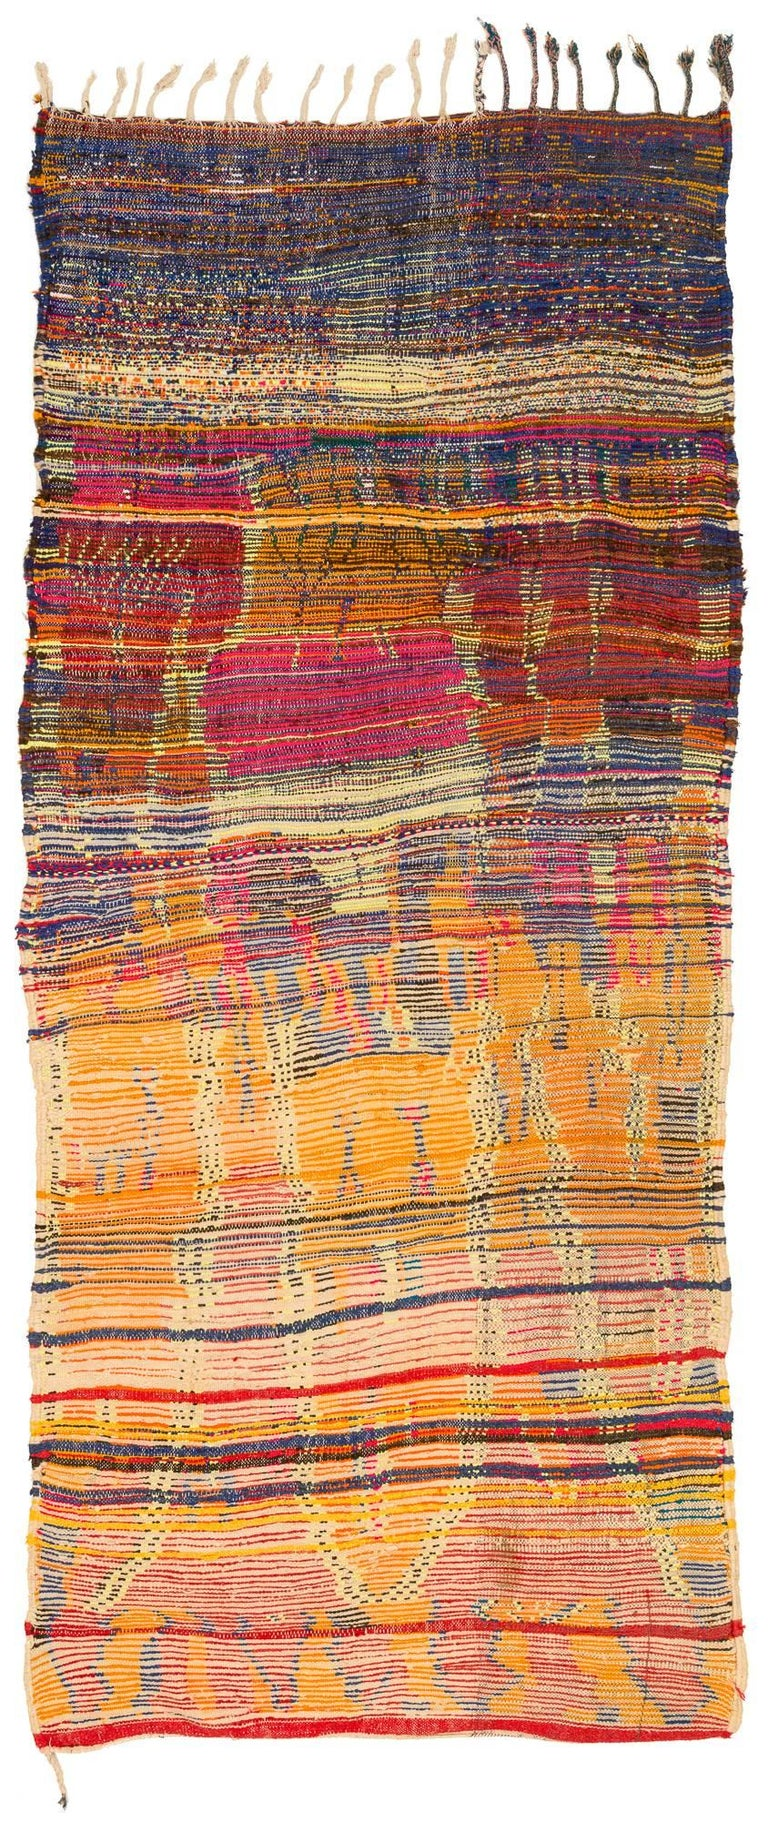 We love this funkily colored and designed rug. Not a very old rug but made for home use. This rug has the feeling of an authentically made tribal rug that has not been woven for the commercial market. An amazingly crazy spirit was the author of this